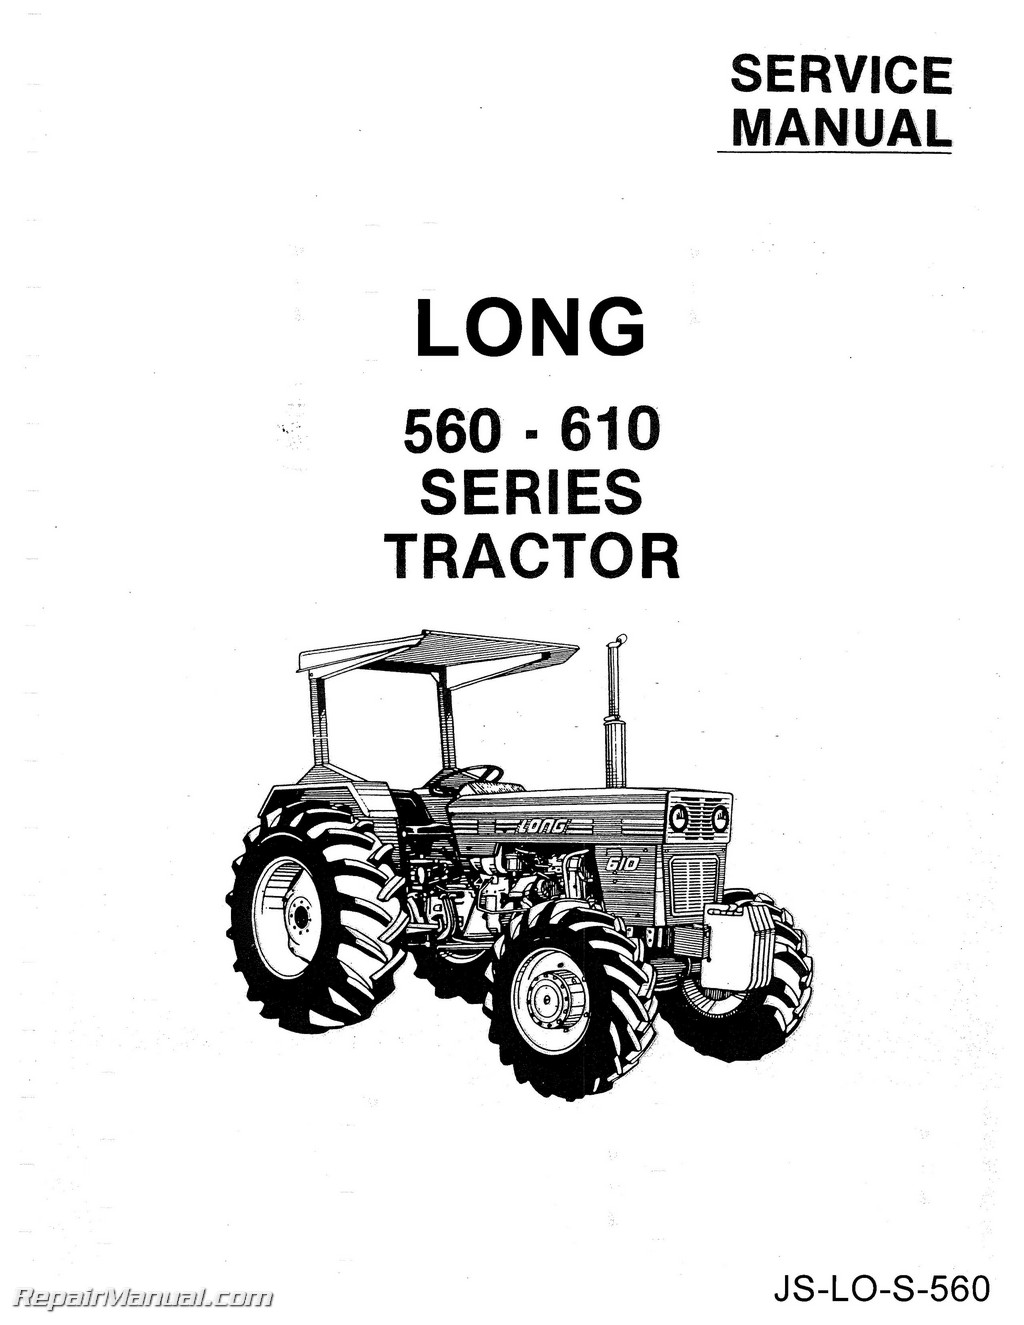 long 560 610 tractor service workshop repair manual repair long 560 610 tractor service workshop repair manual page 1